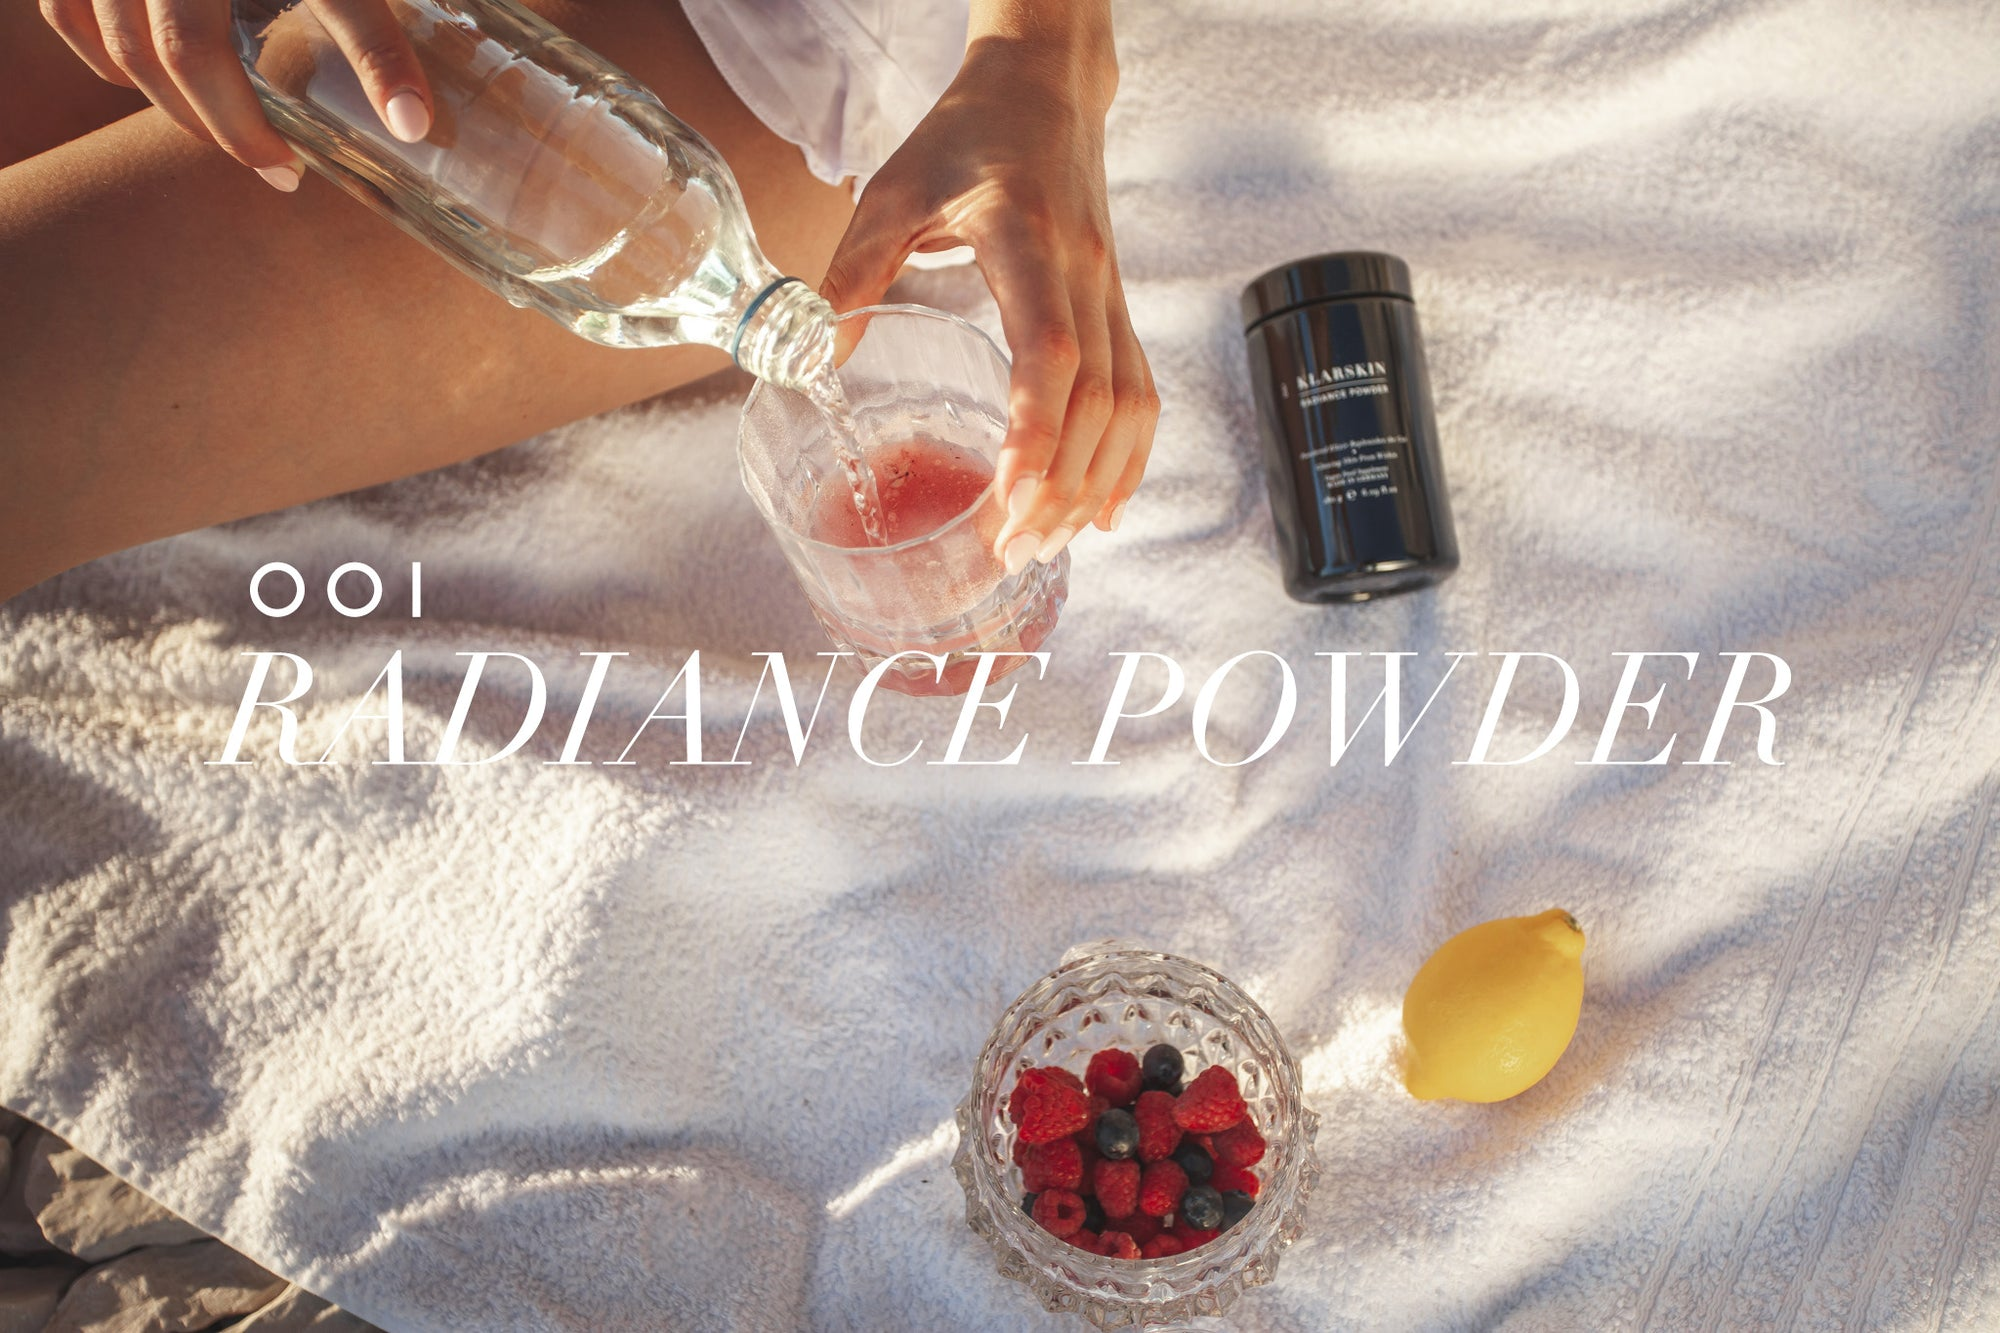 The Prime Microbiome - Radiance Powder